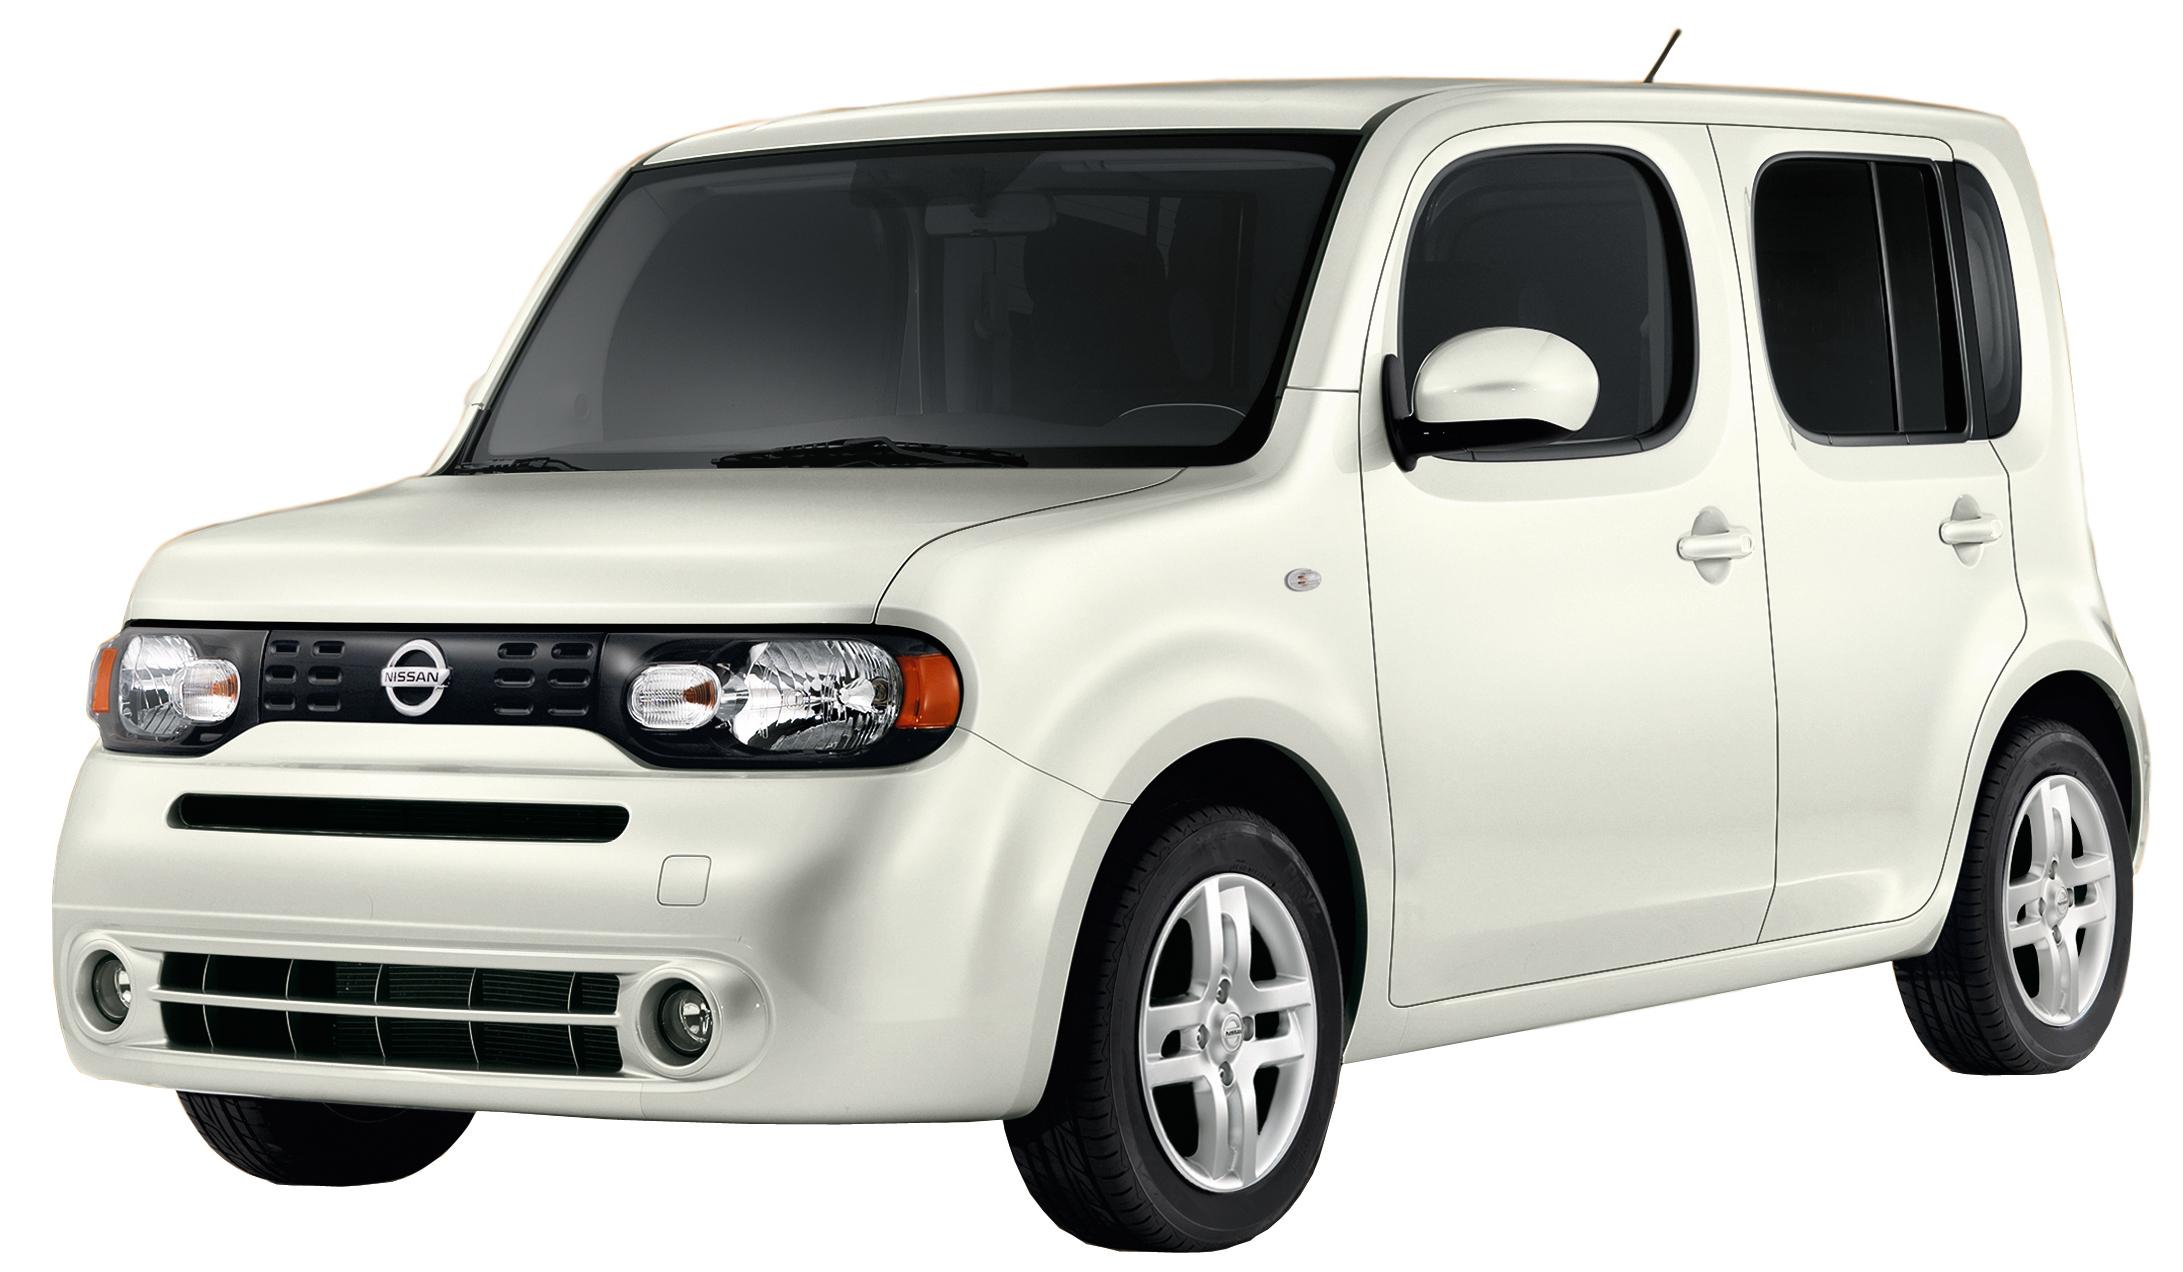 2010 Nissan Cube Top Speed